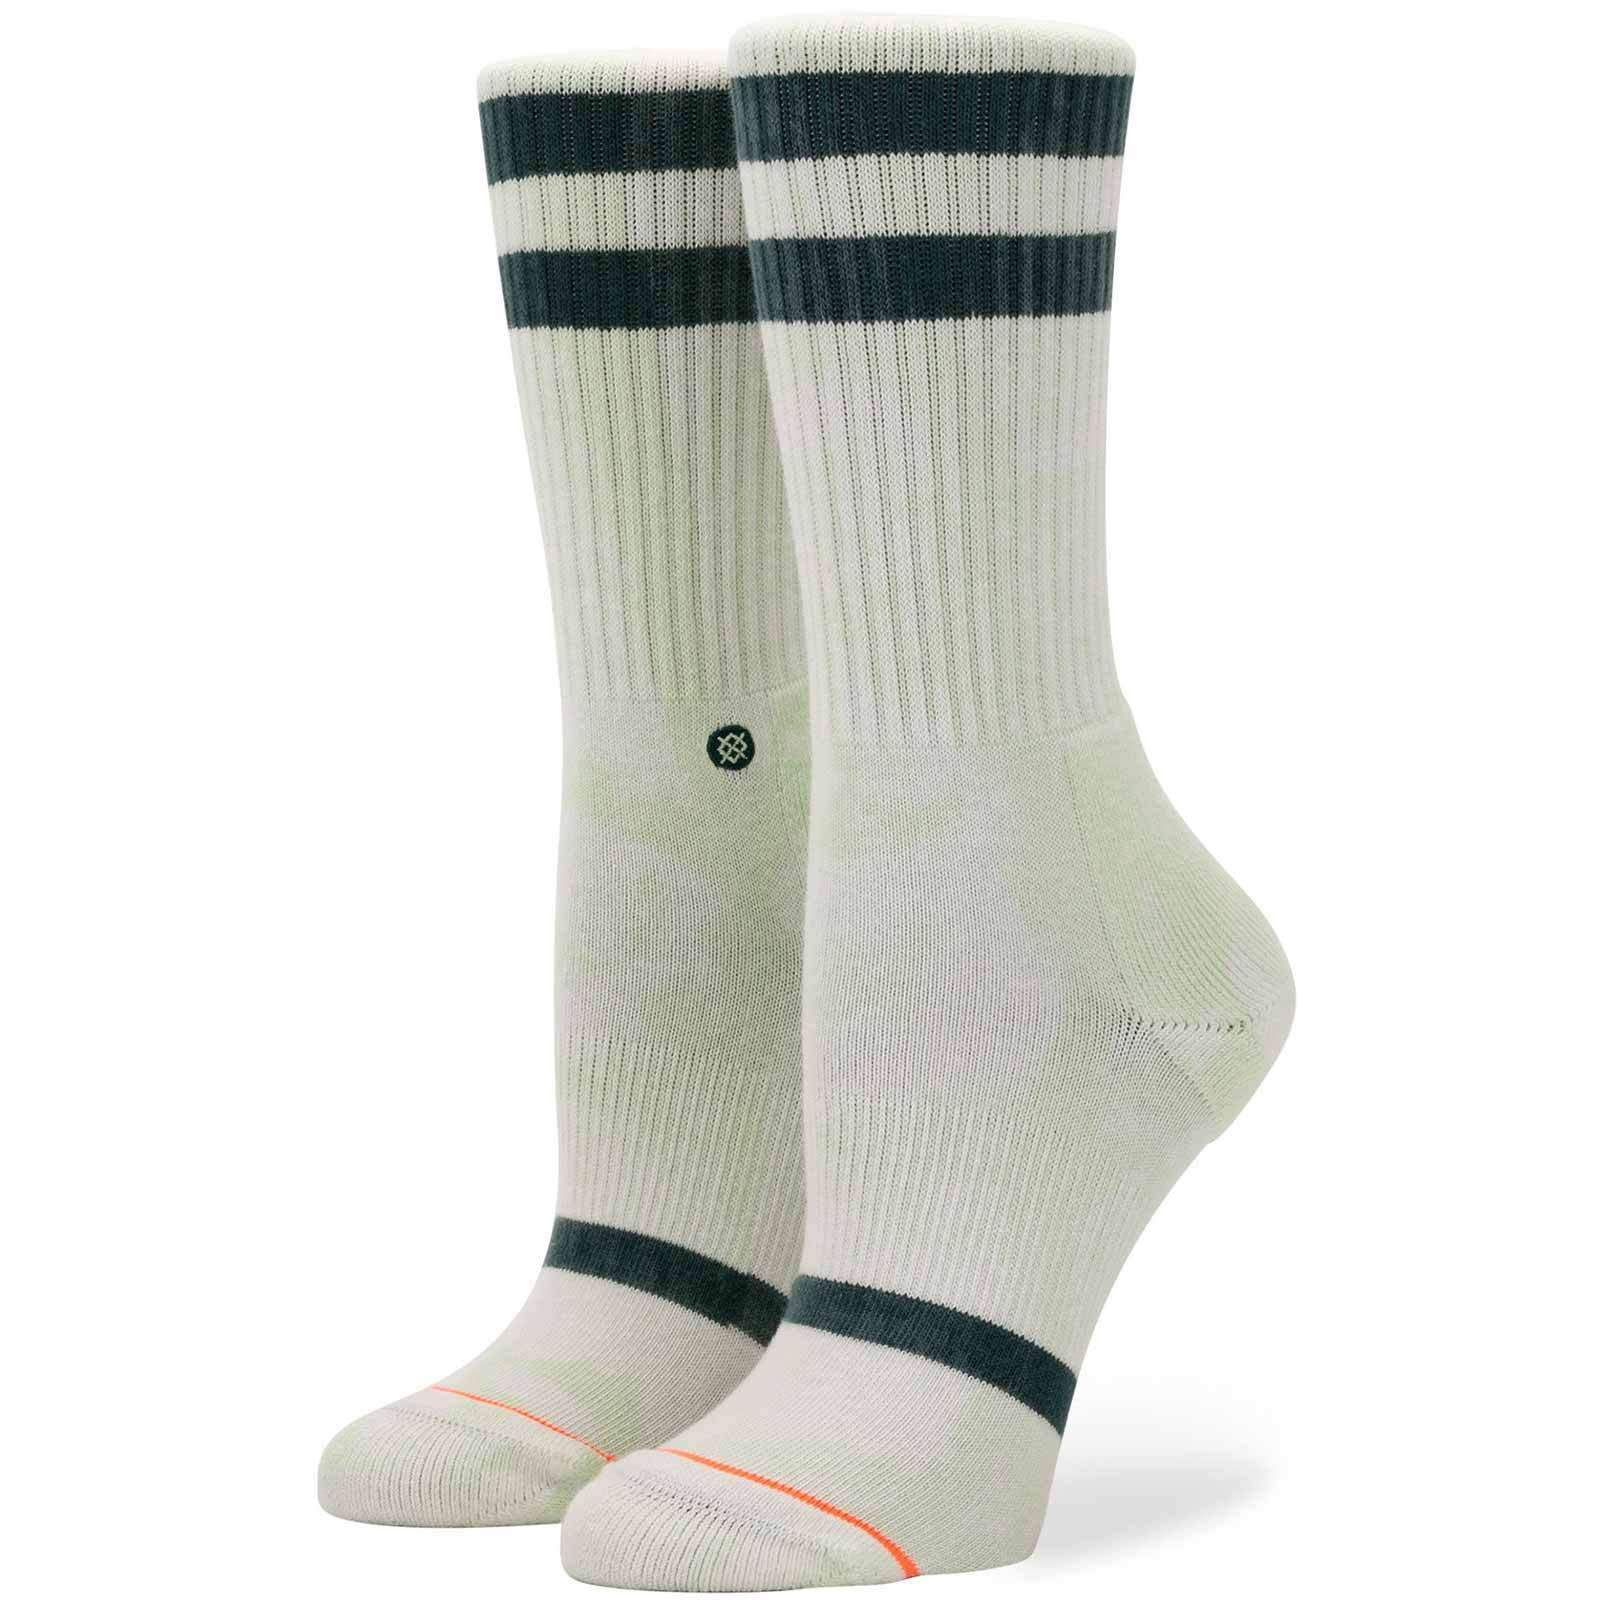 Stance Hippie Moshpit Crew Socks in Offwhite